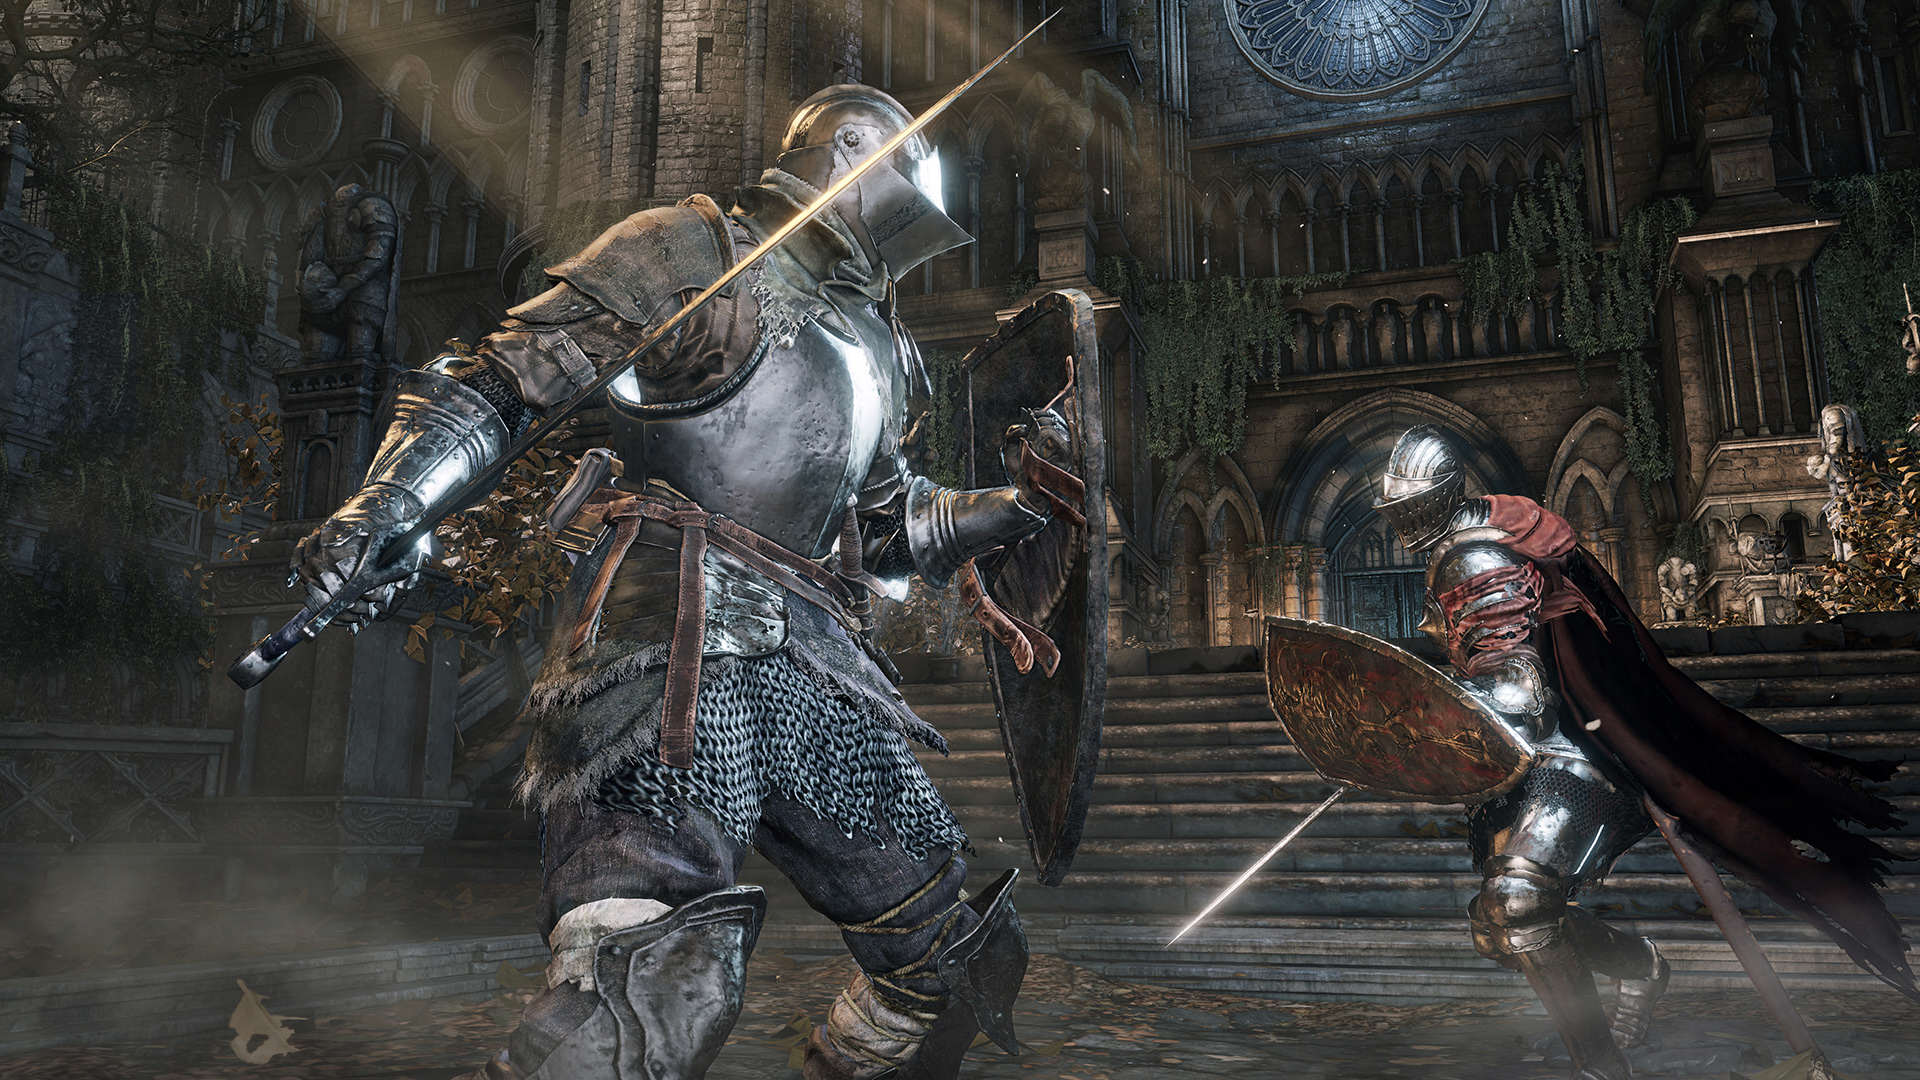 2980097 dark souls iii 6 New Dark Souls 3 Video Shows Off Thief Class, Moves And Abilities